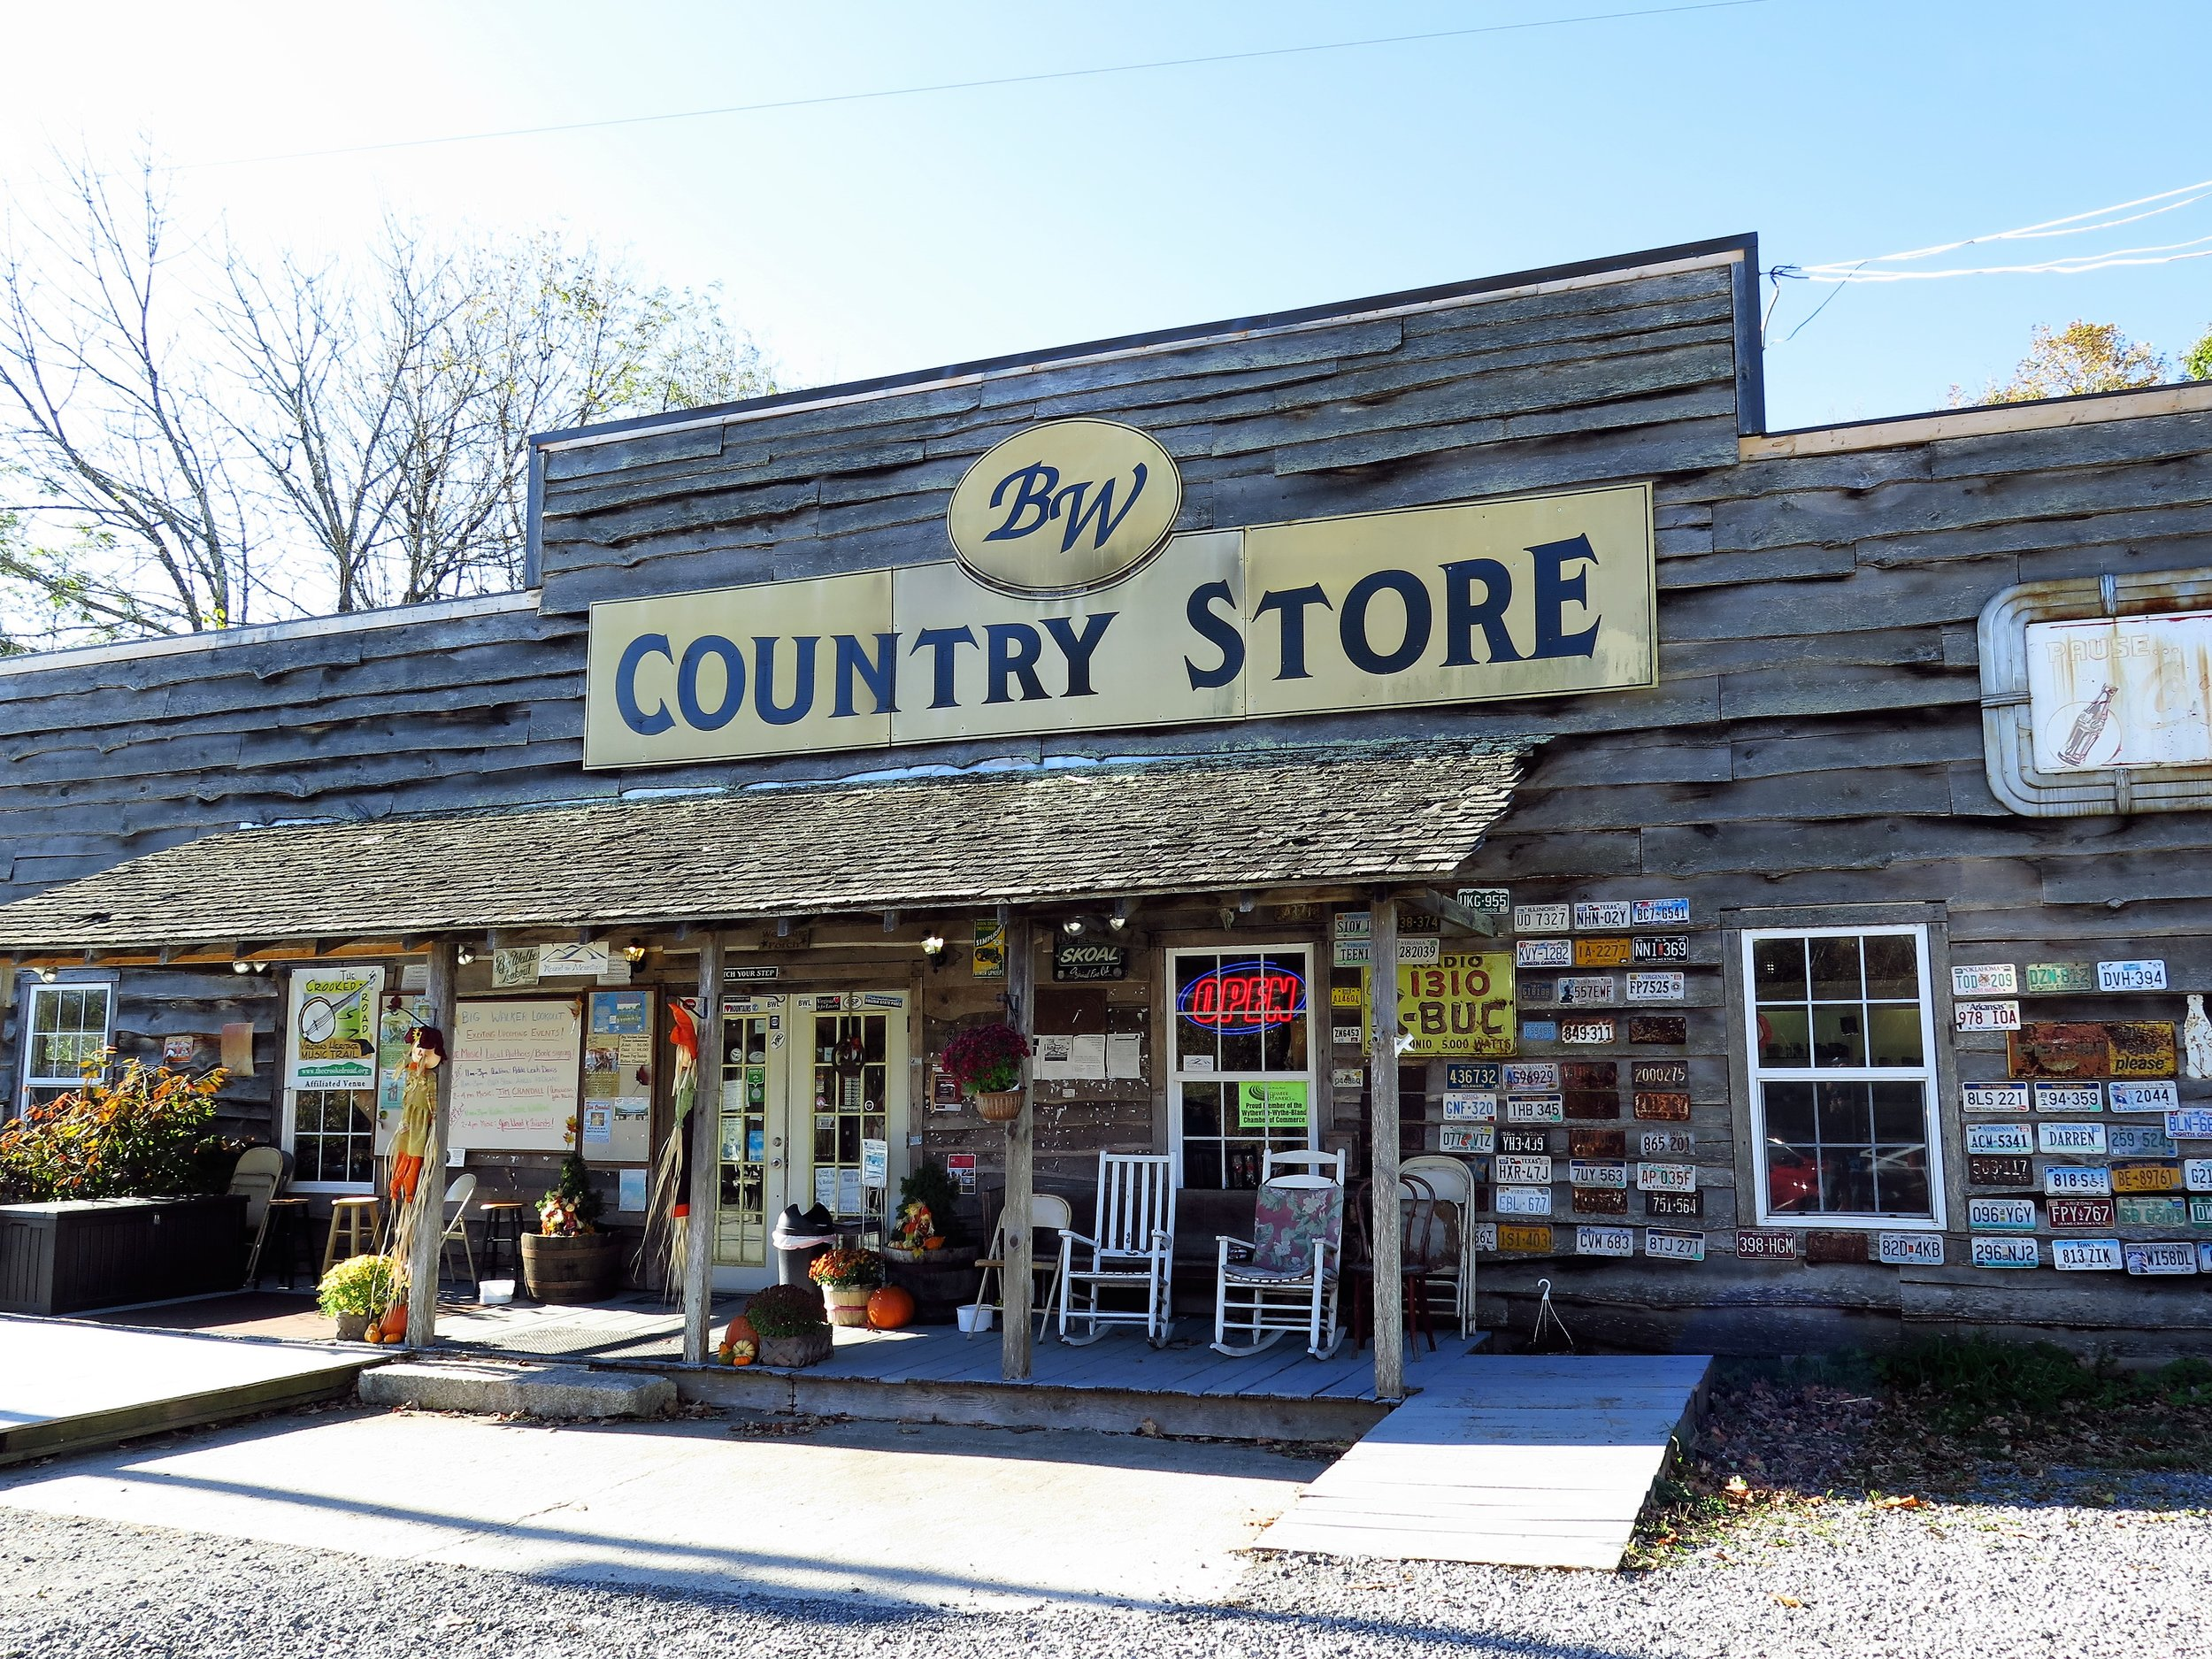 This country store is located in Wytheville, Va. A good bit of history and a look out tower to climb and see the surrounding landscape.